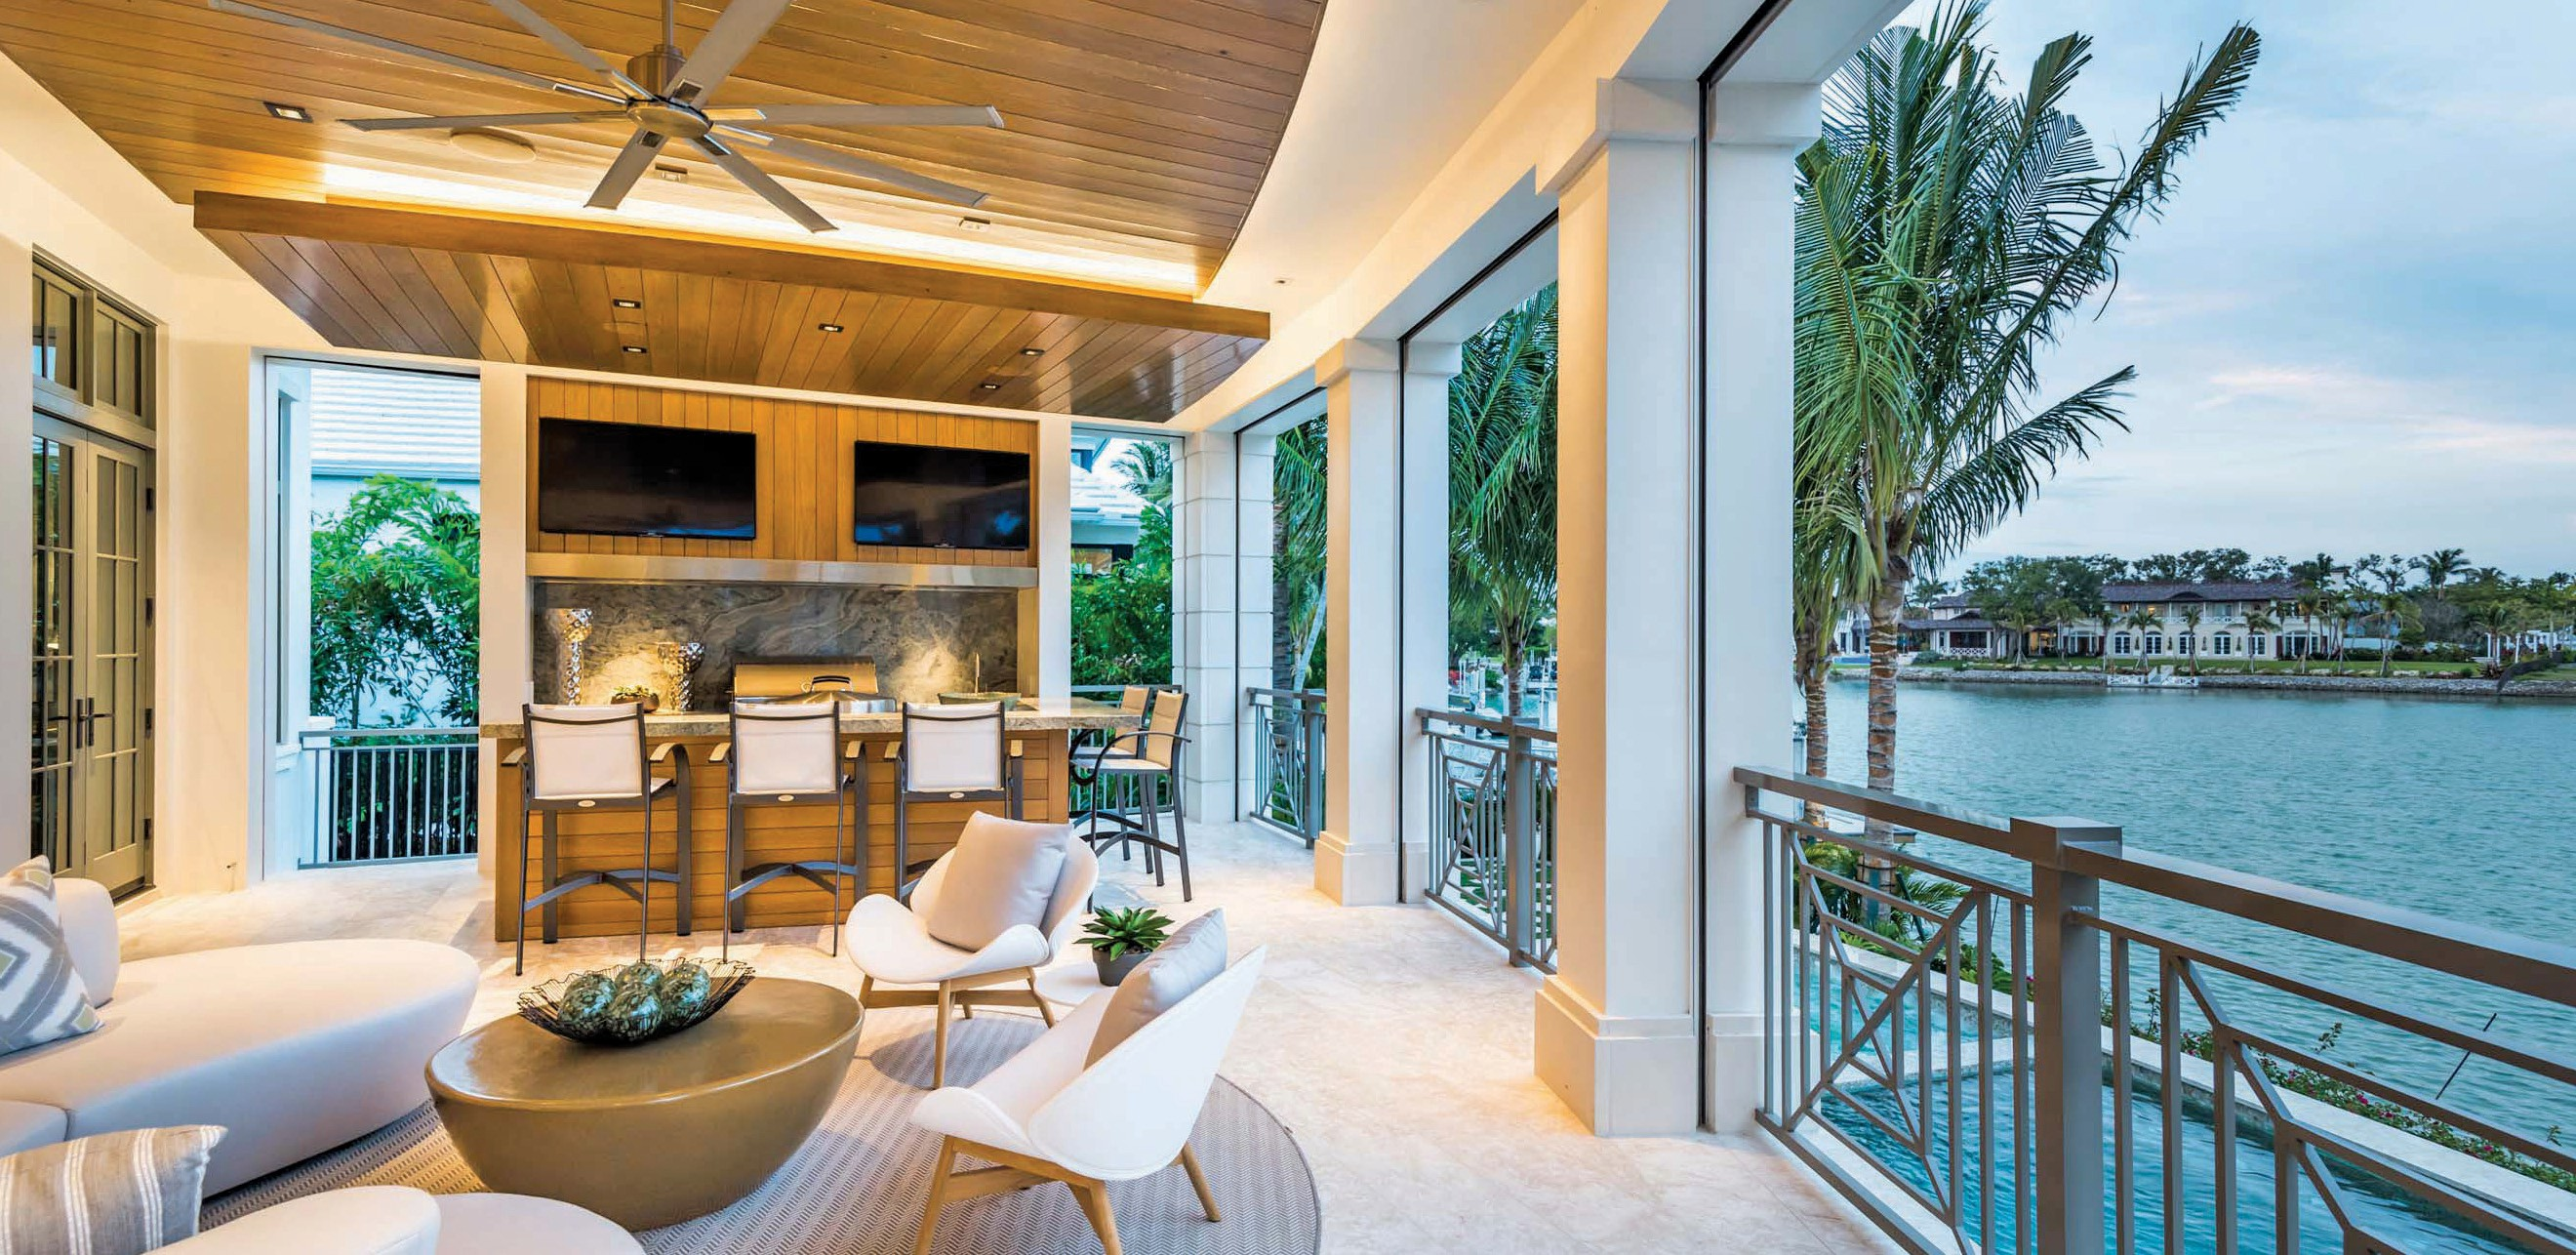 London Bay Homes: creating custom residences on your ideal ... on john r wood naples, bay of naples, pitchers of naples, the turtle club naples, bay of capri, aria naples, m waterfront grille naples,